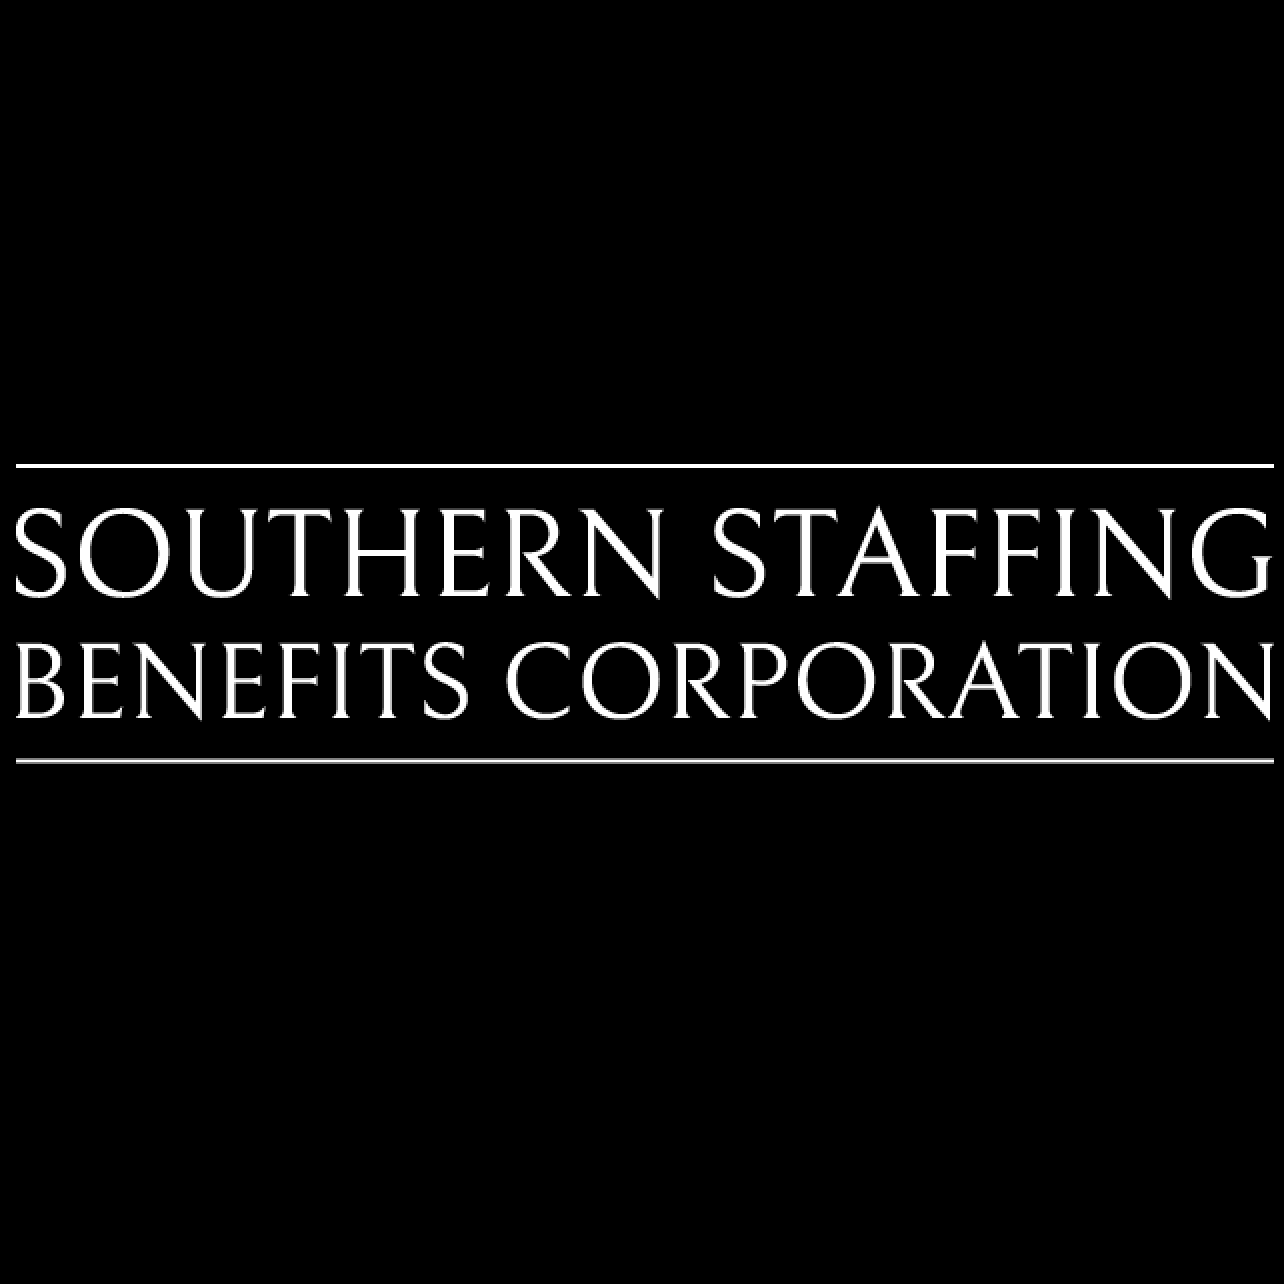 Southern Staffing Benefits Corporation image 0